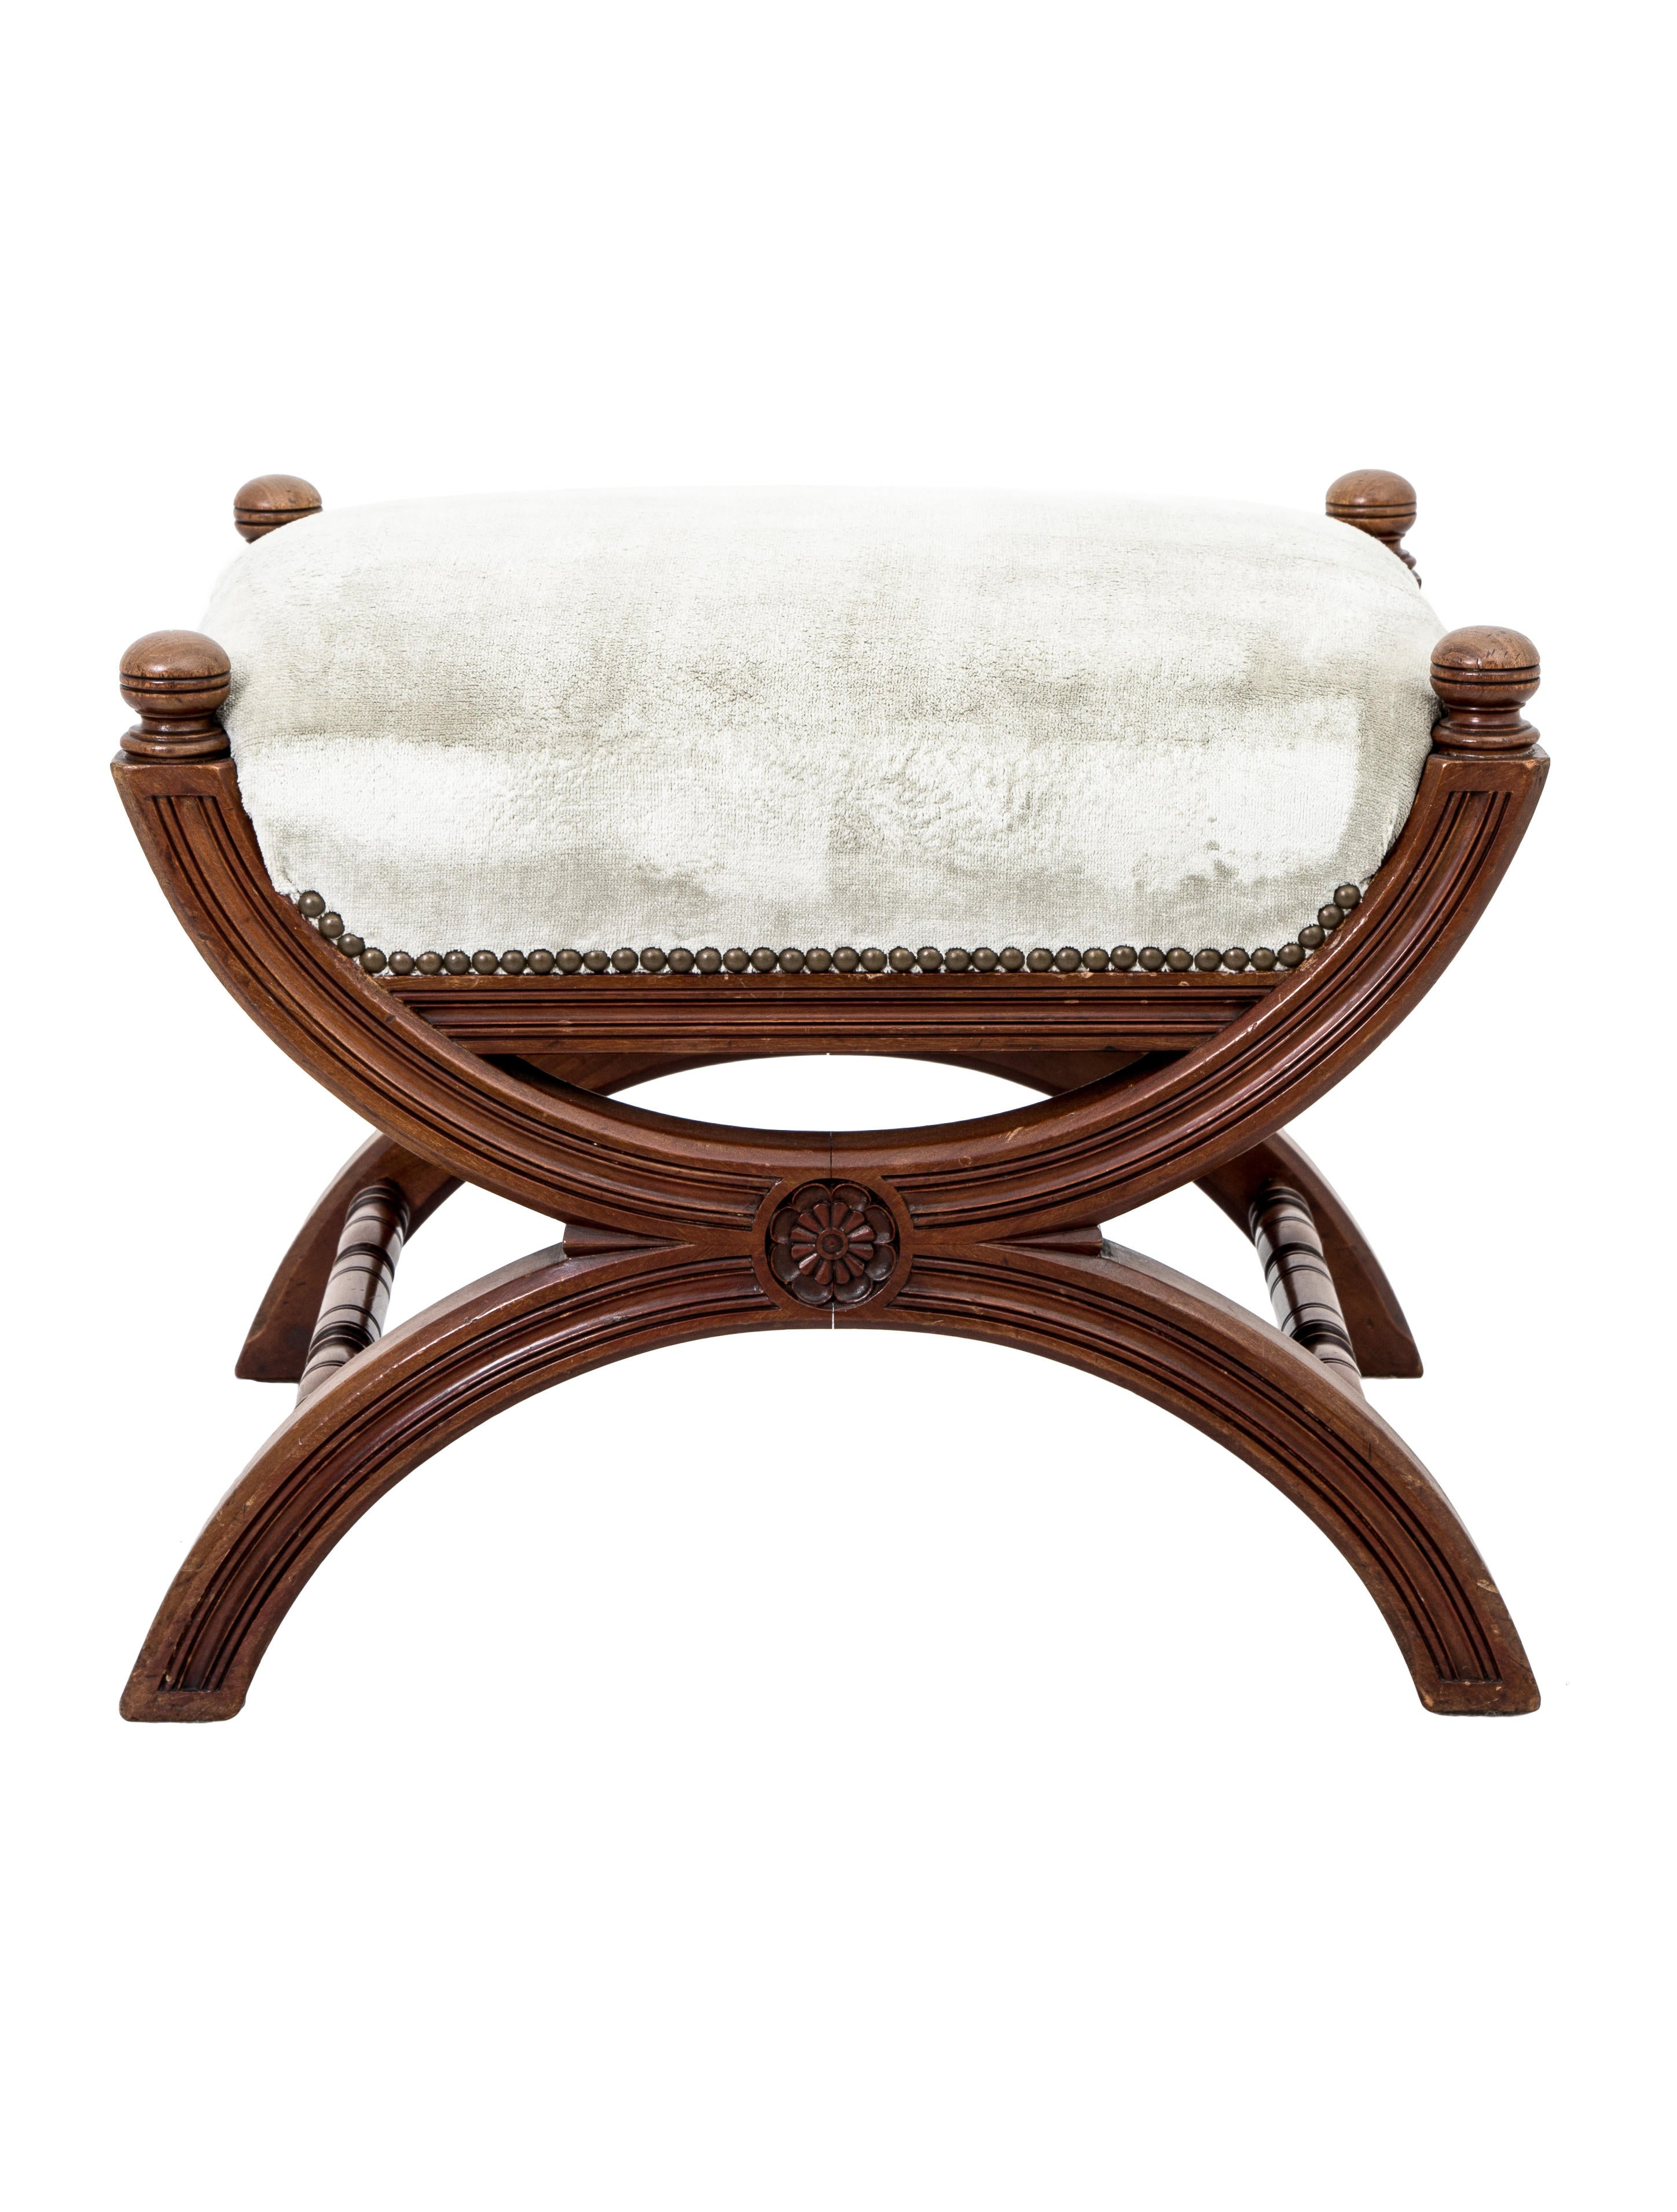 Ottoman Curule Bench Furniture Ottom20009 The Realreal